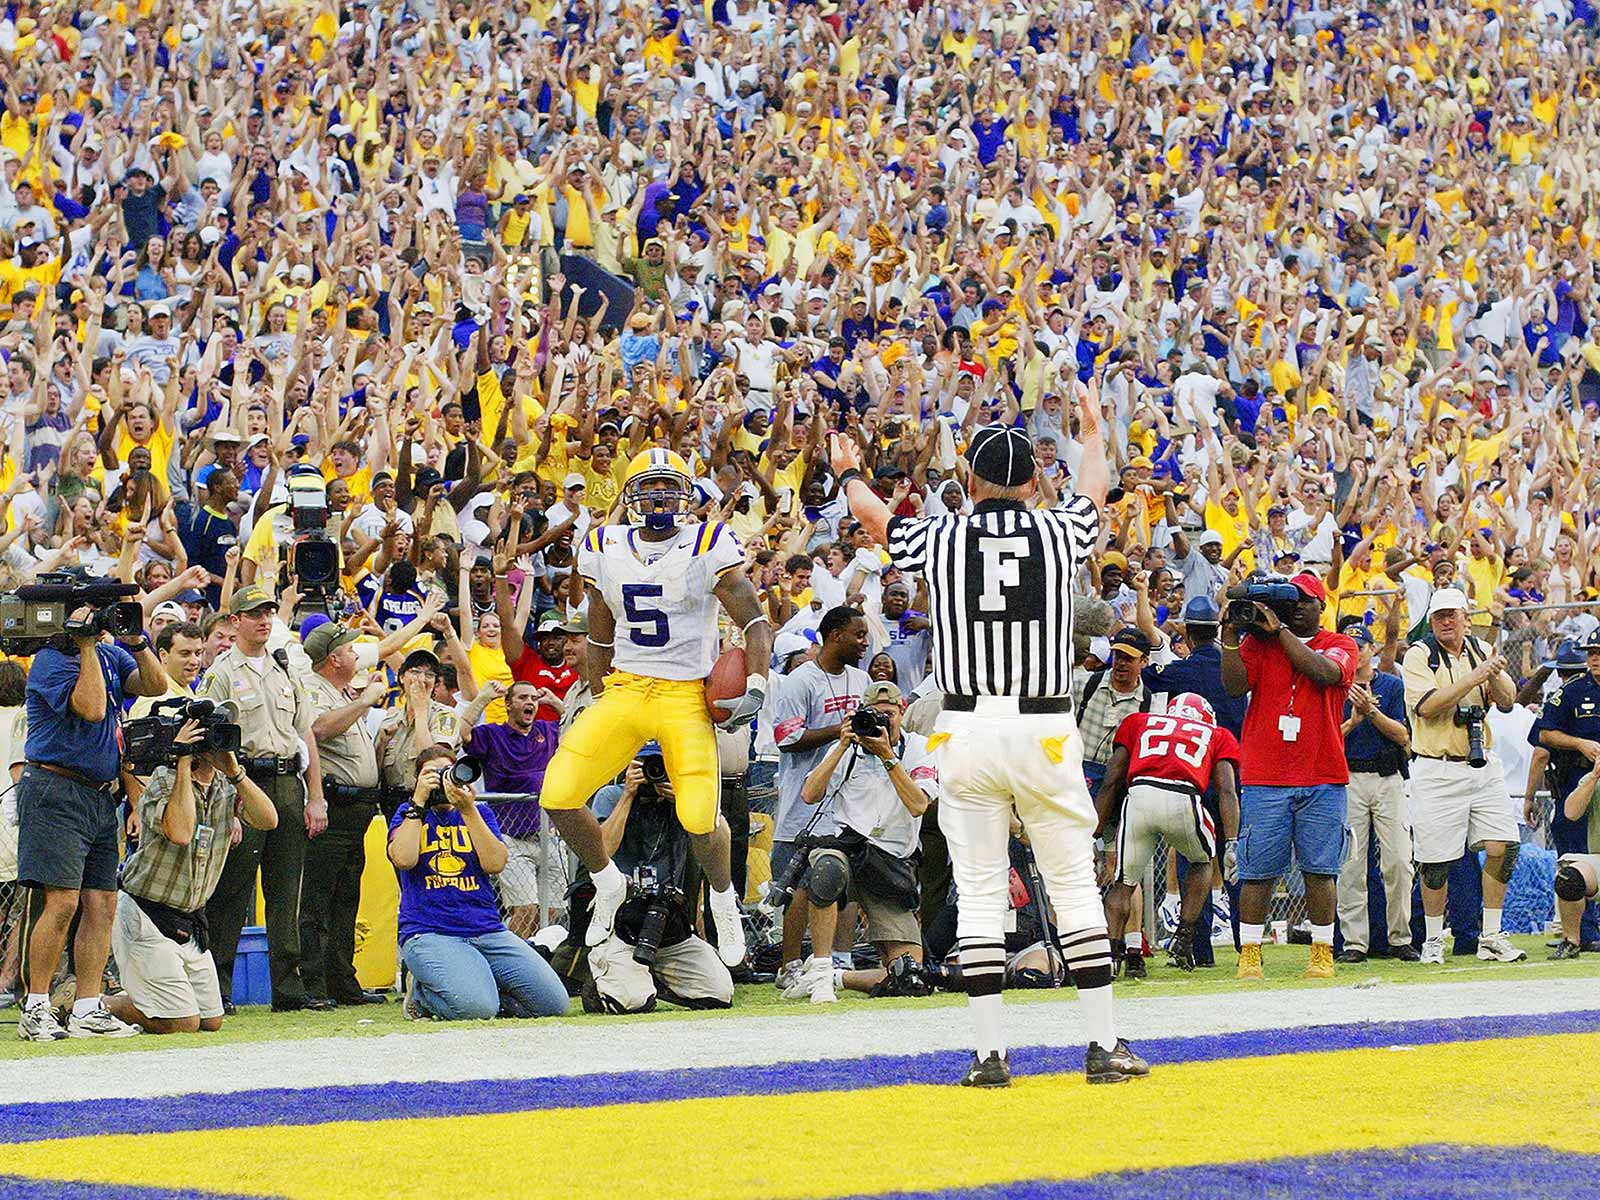 LSU vs. Georgia, 2003: Skylar Green celebrates touchdown from Matt Mauk